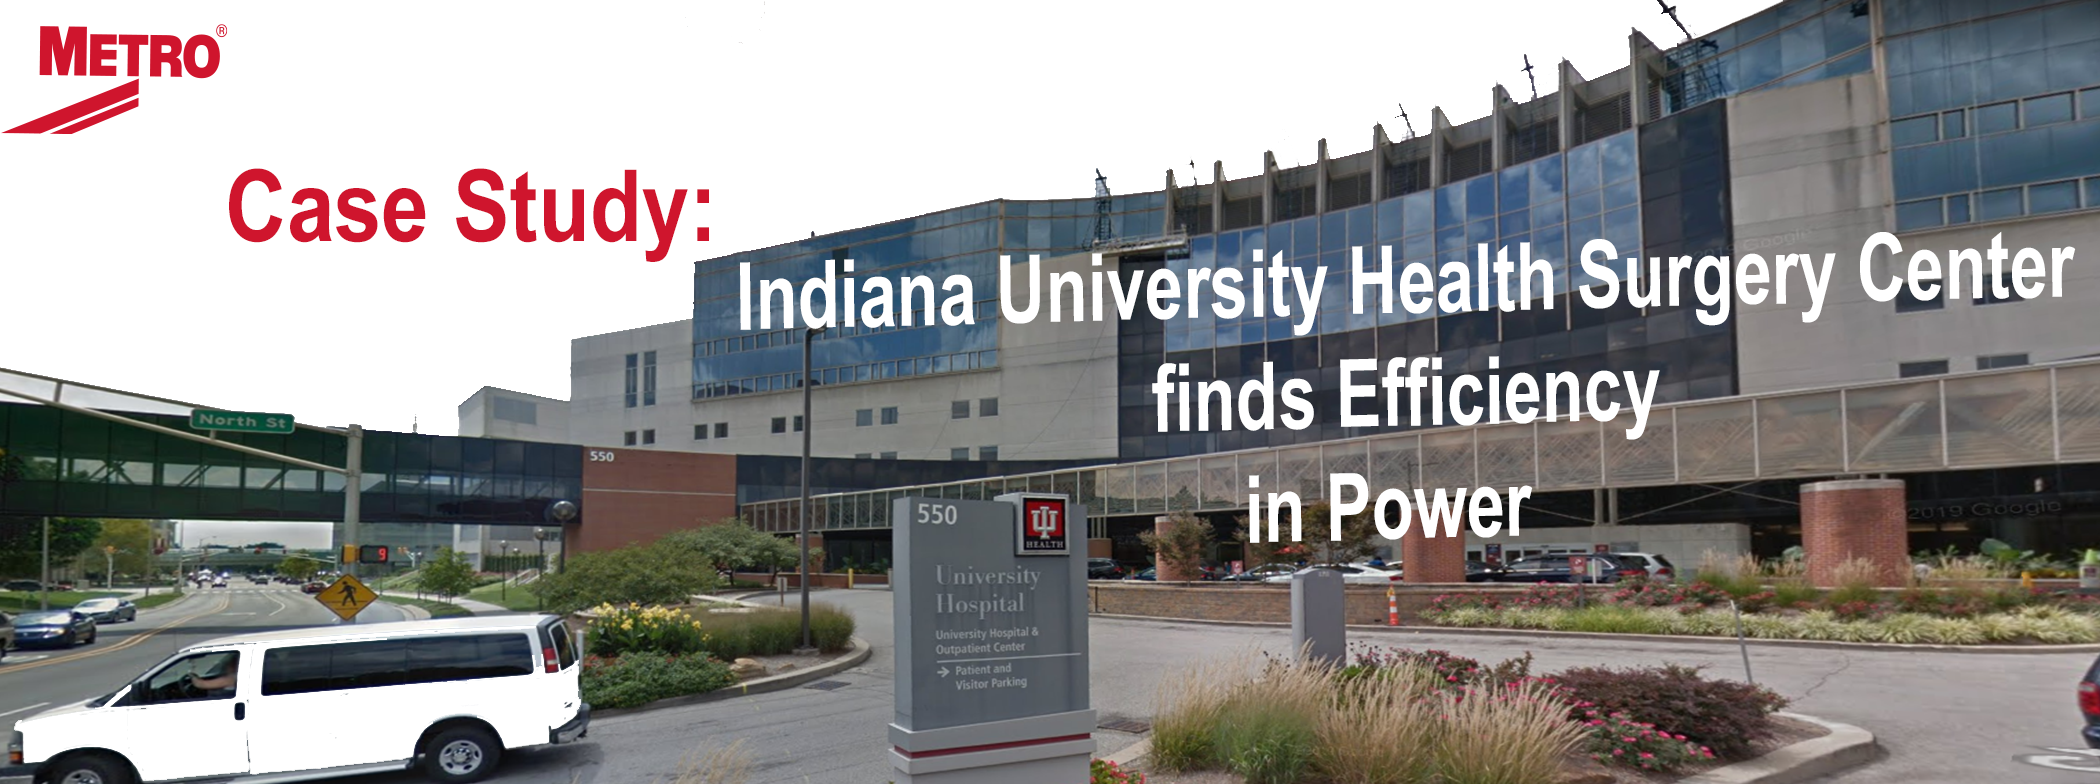 CASE STUDY: IU Health finds Efficiency in Power[Pod]